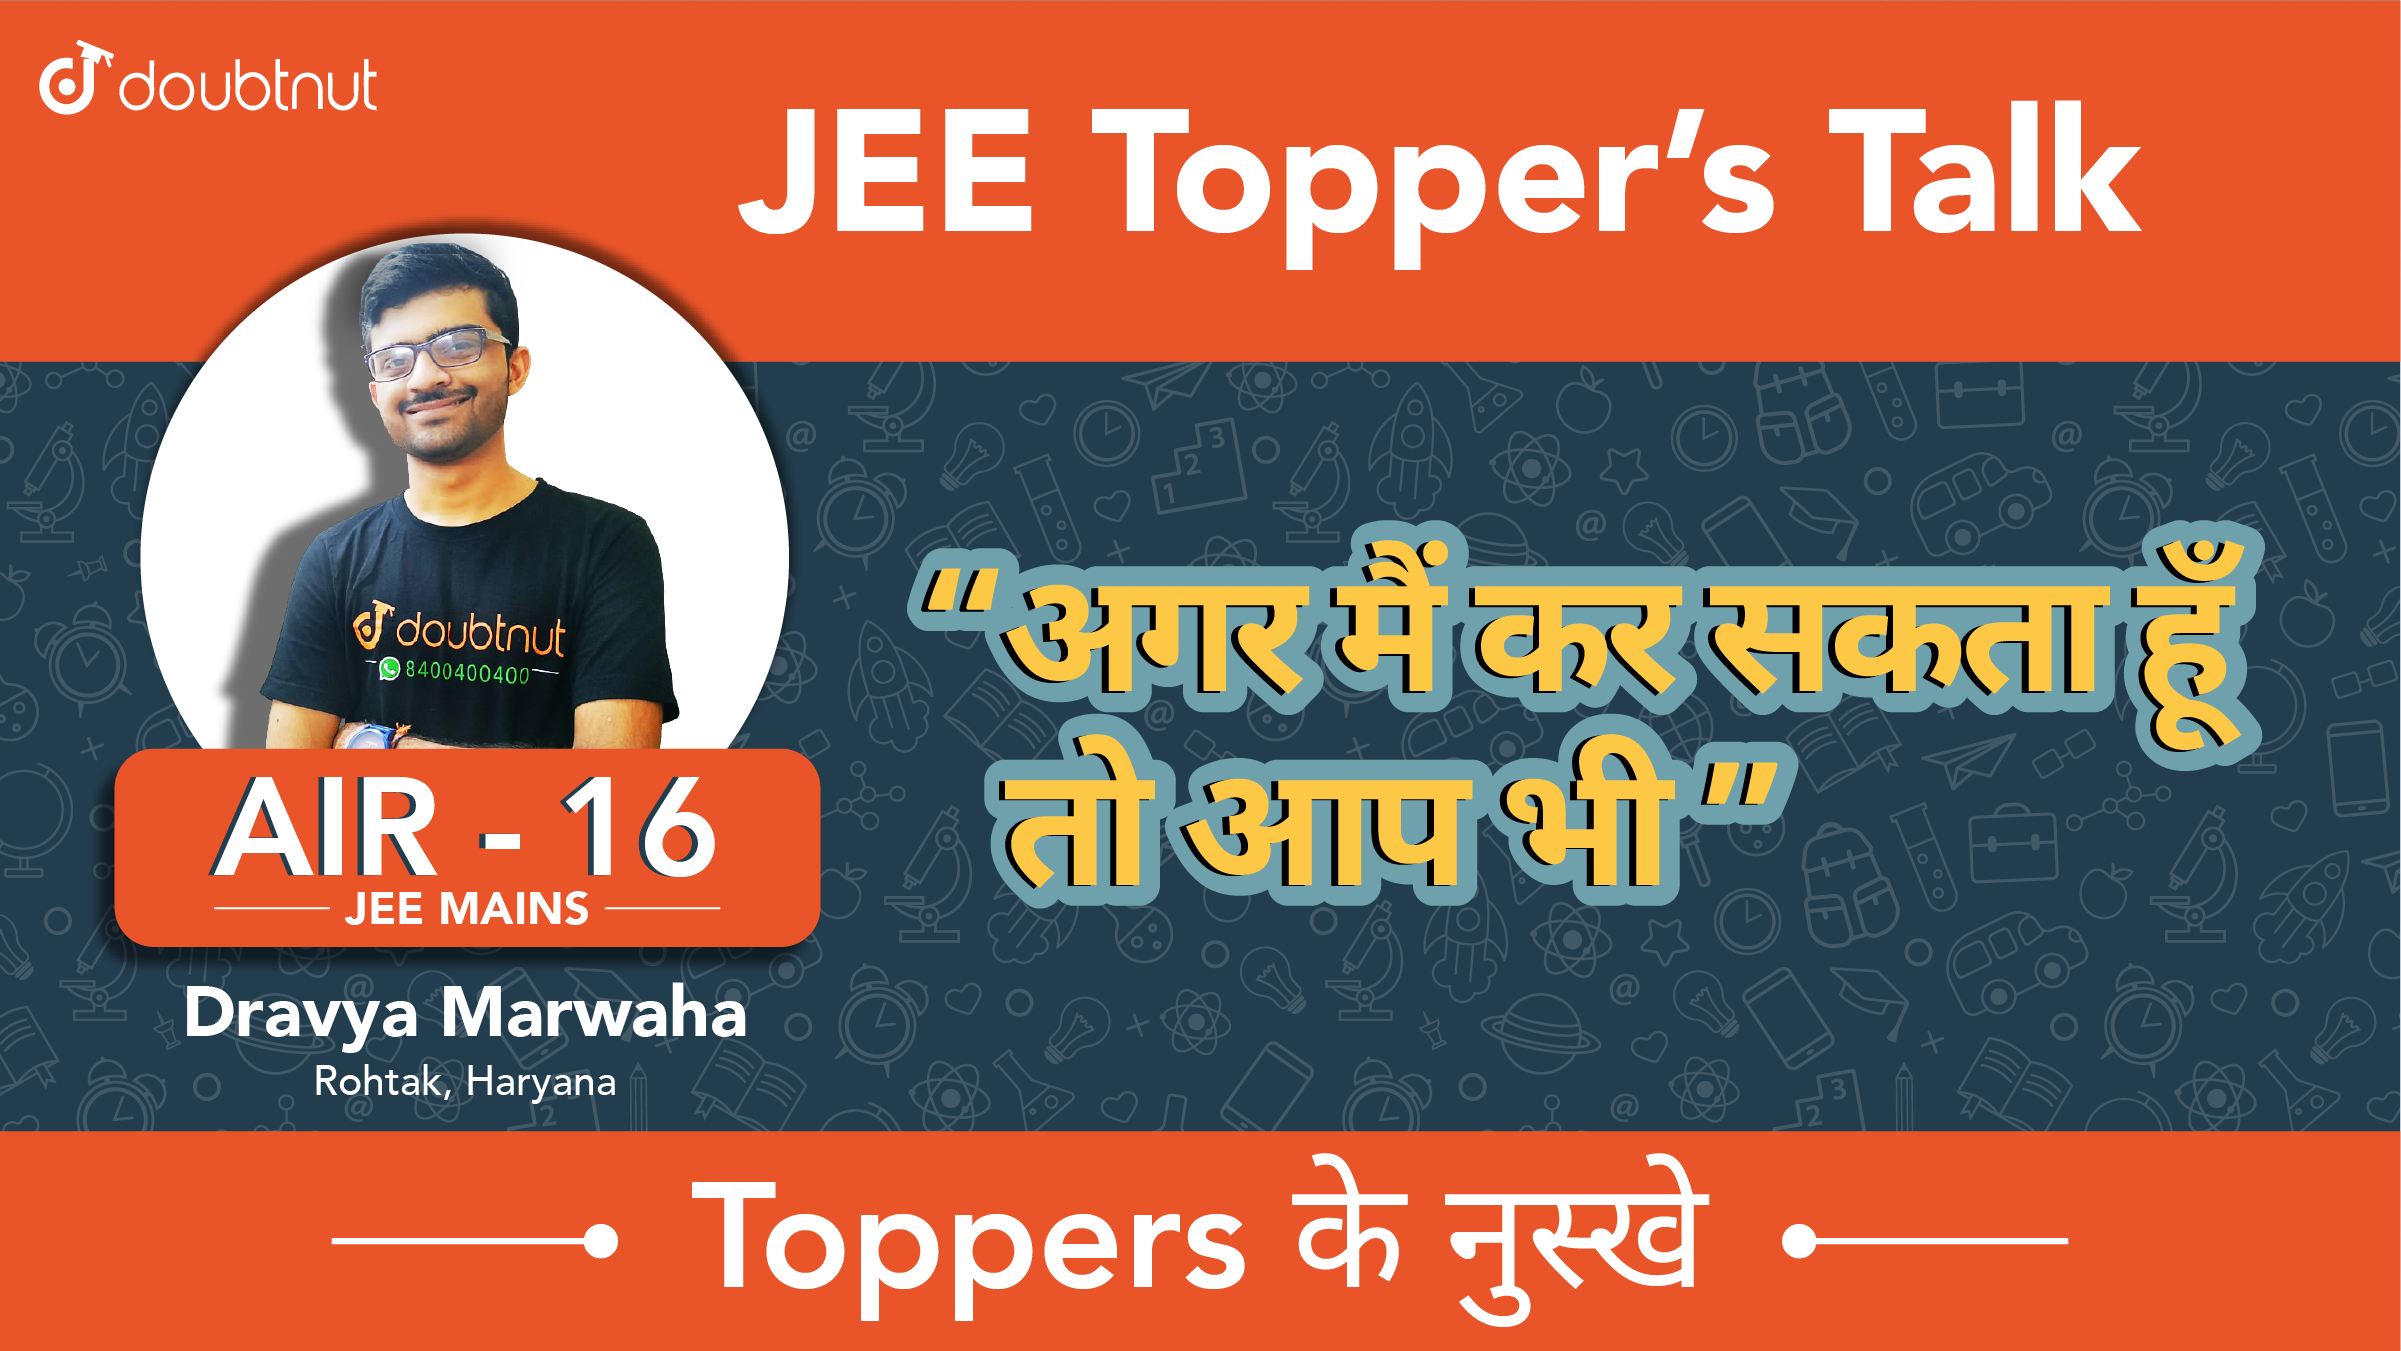 JEE Main Topper 2019 | AIR 16, Best Tips for JEE Mains 2020 by Dravya Marwaha